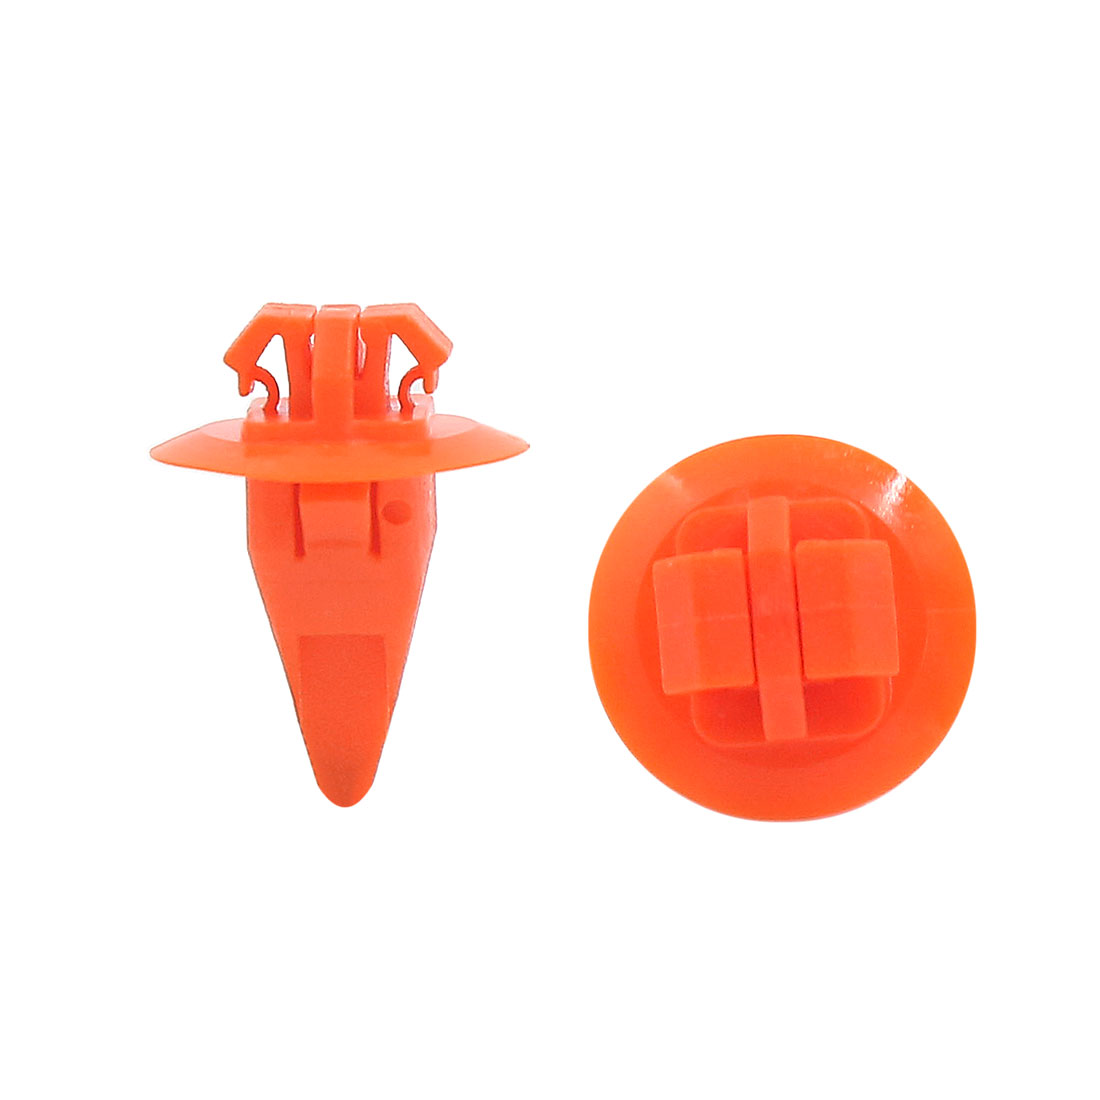 50 Pcs 10 x 8mm Hole Plastic Automobile Car Fastener Rivets Fender Clips Orange